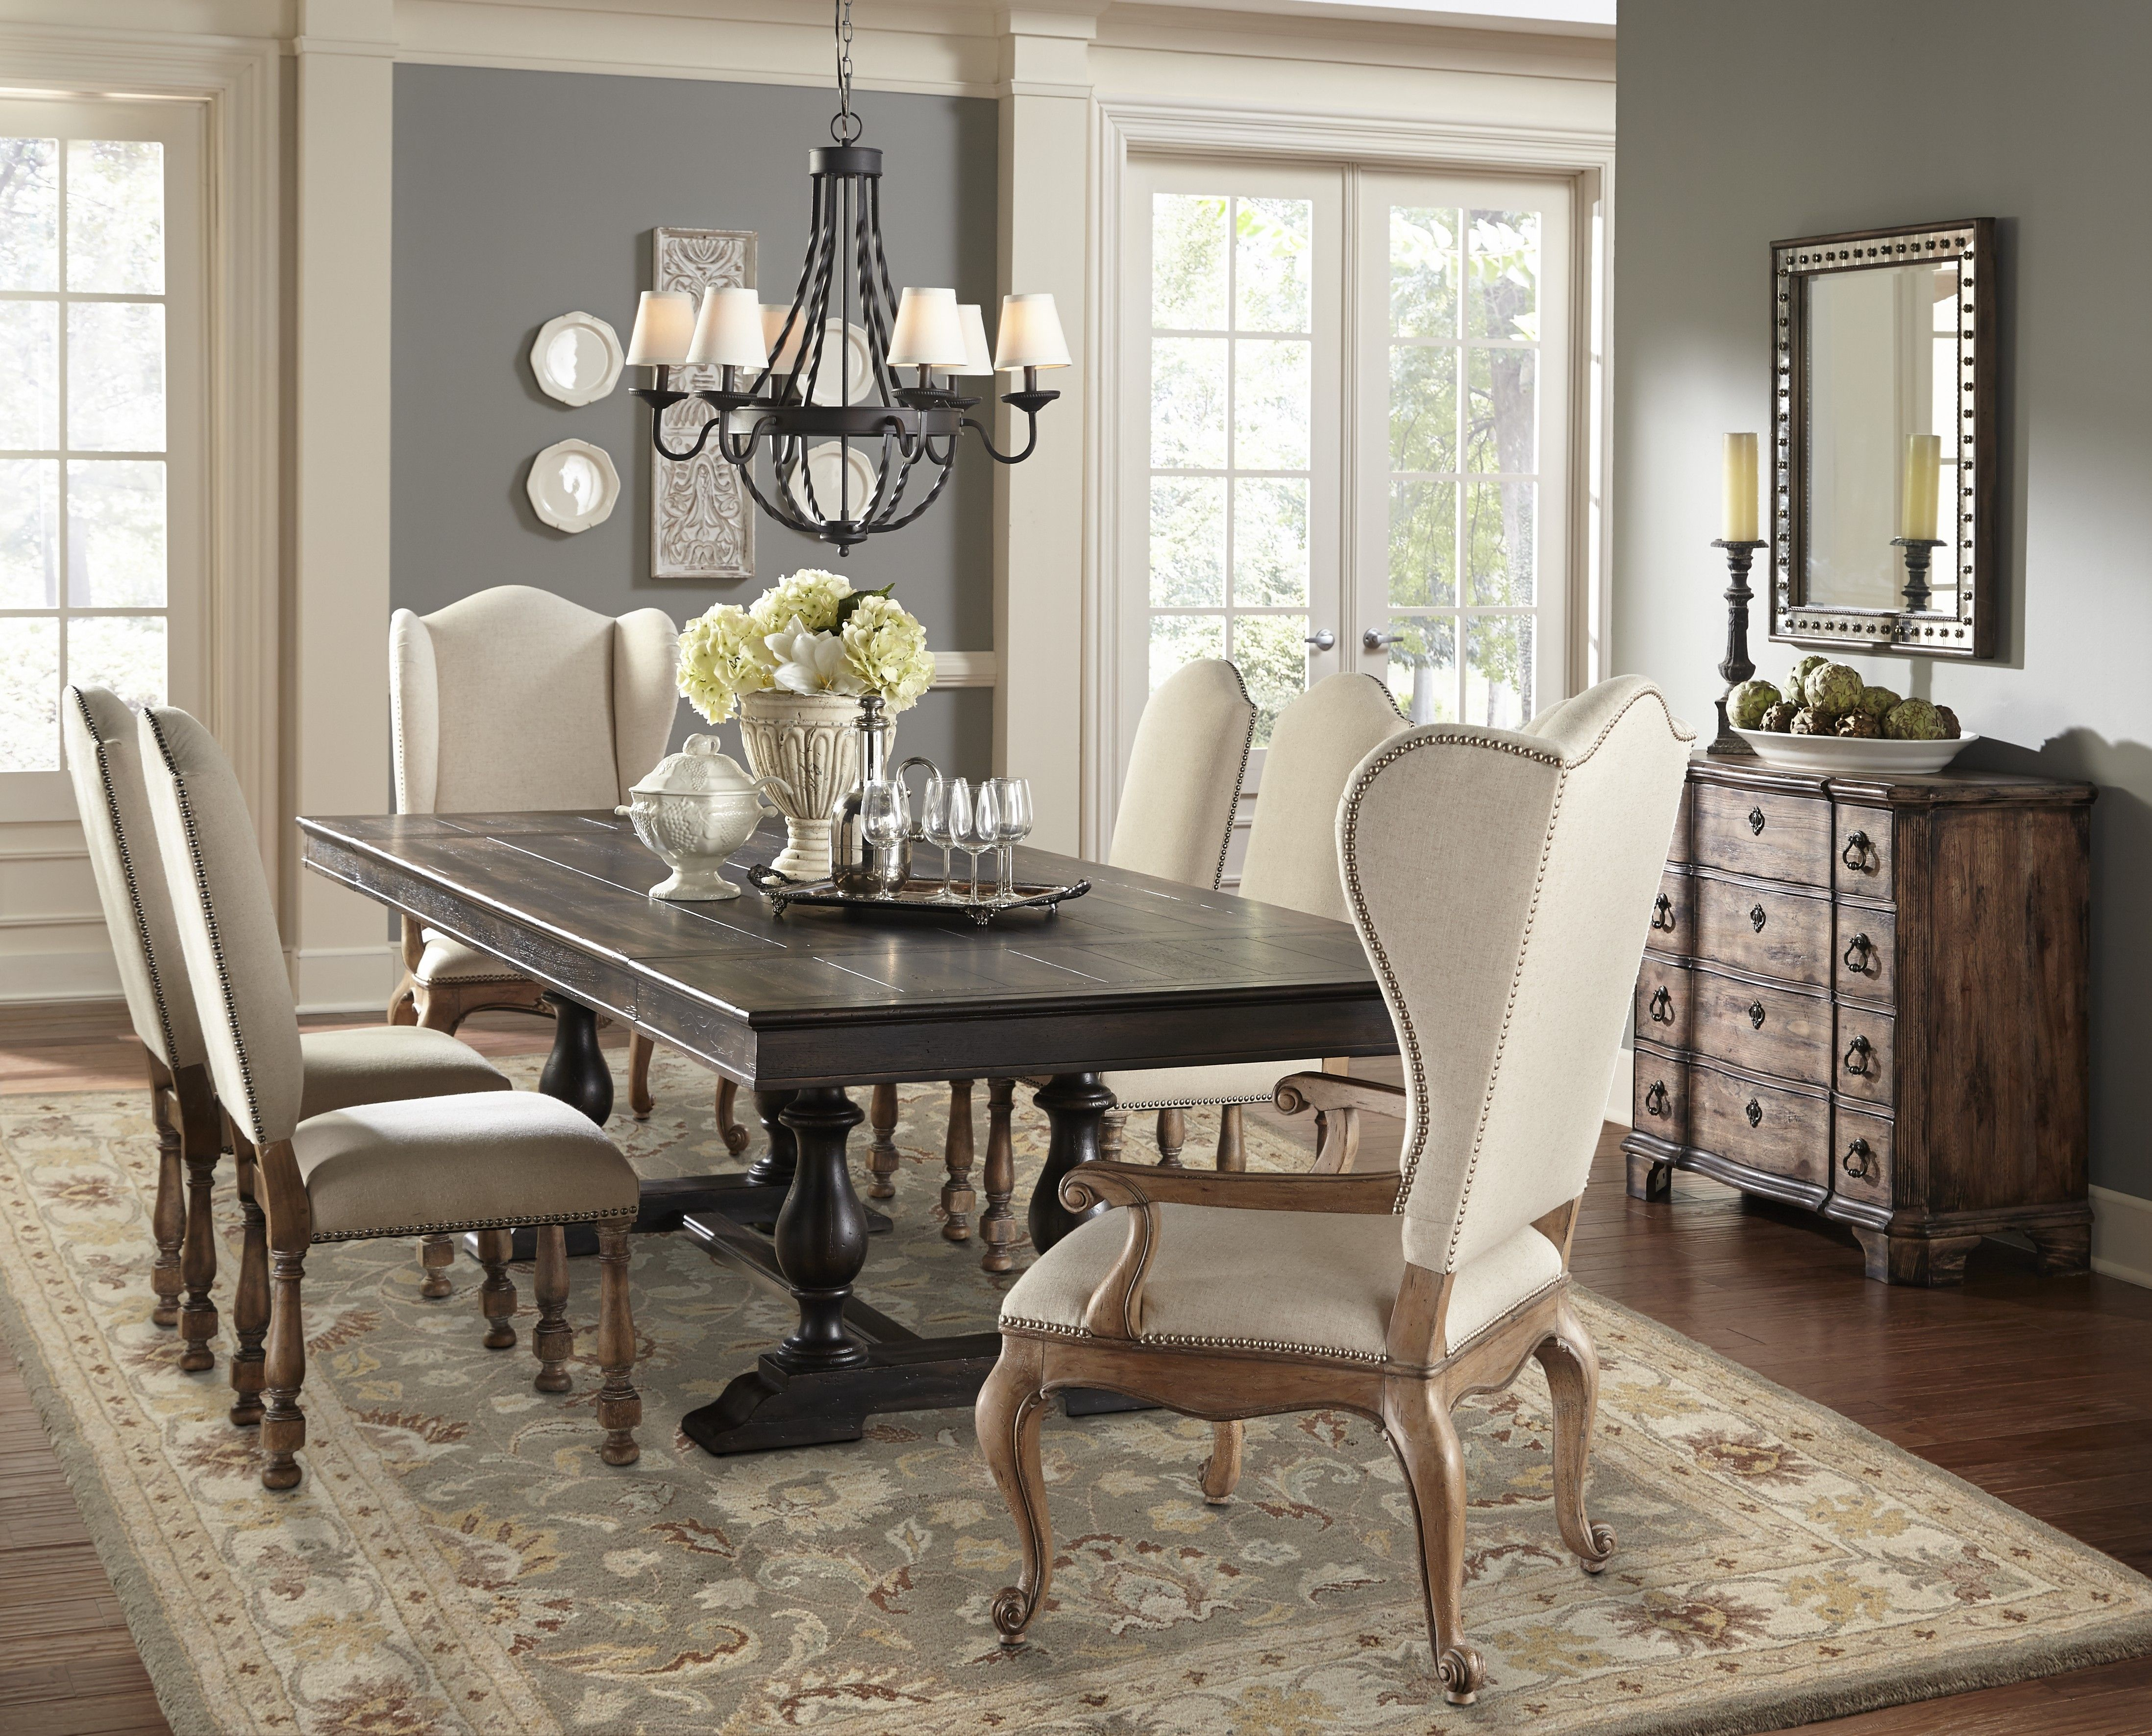 Eclectic dining set from accentrics home by pulaski furniture accentrics home accent dining - Pulaski dining room ...